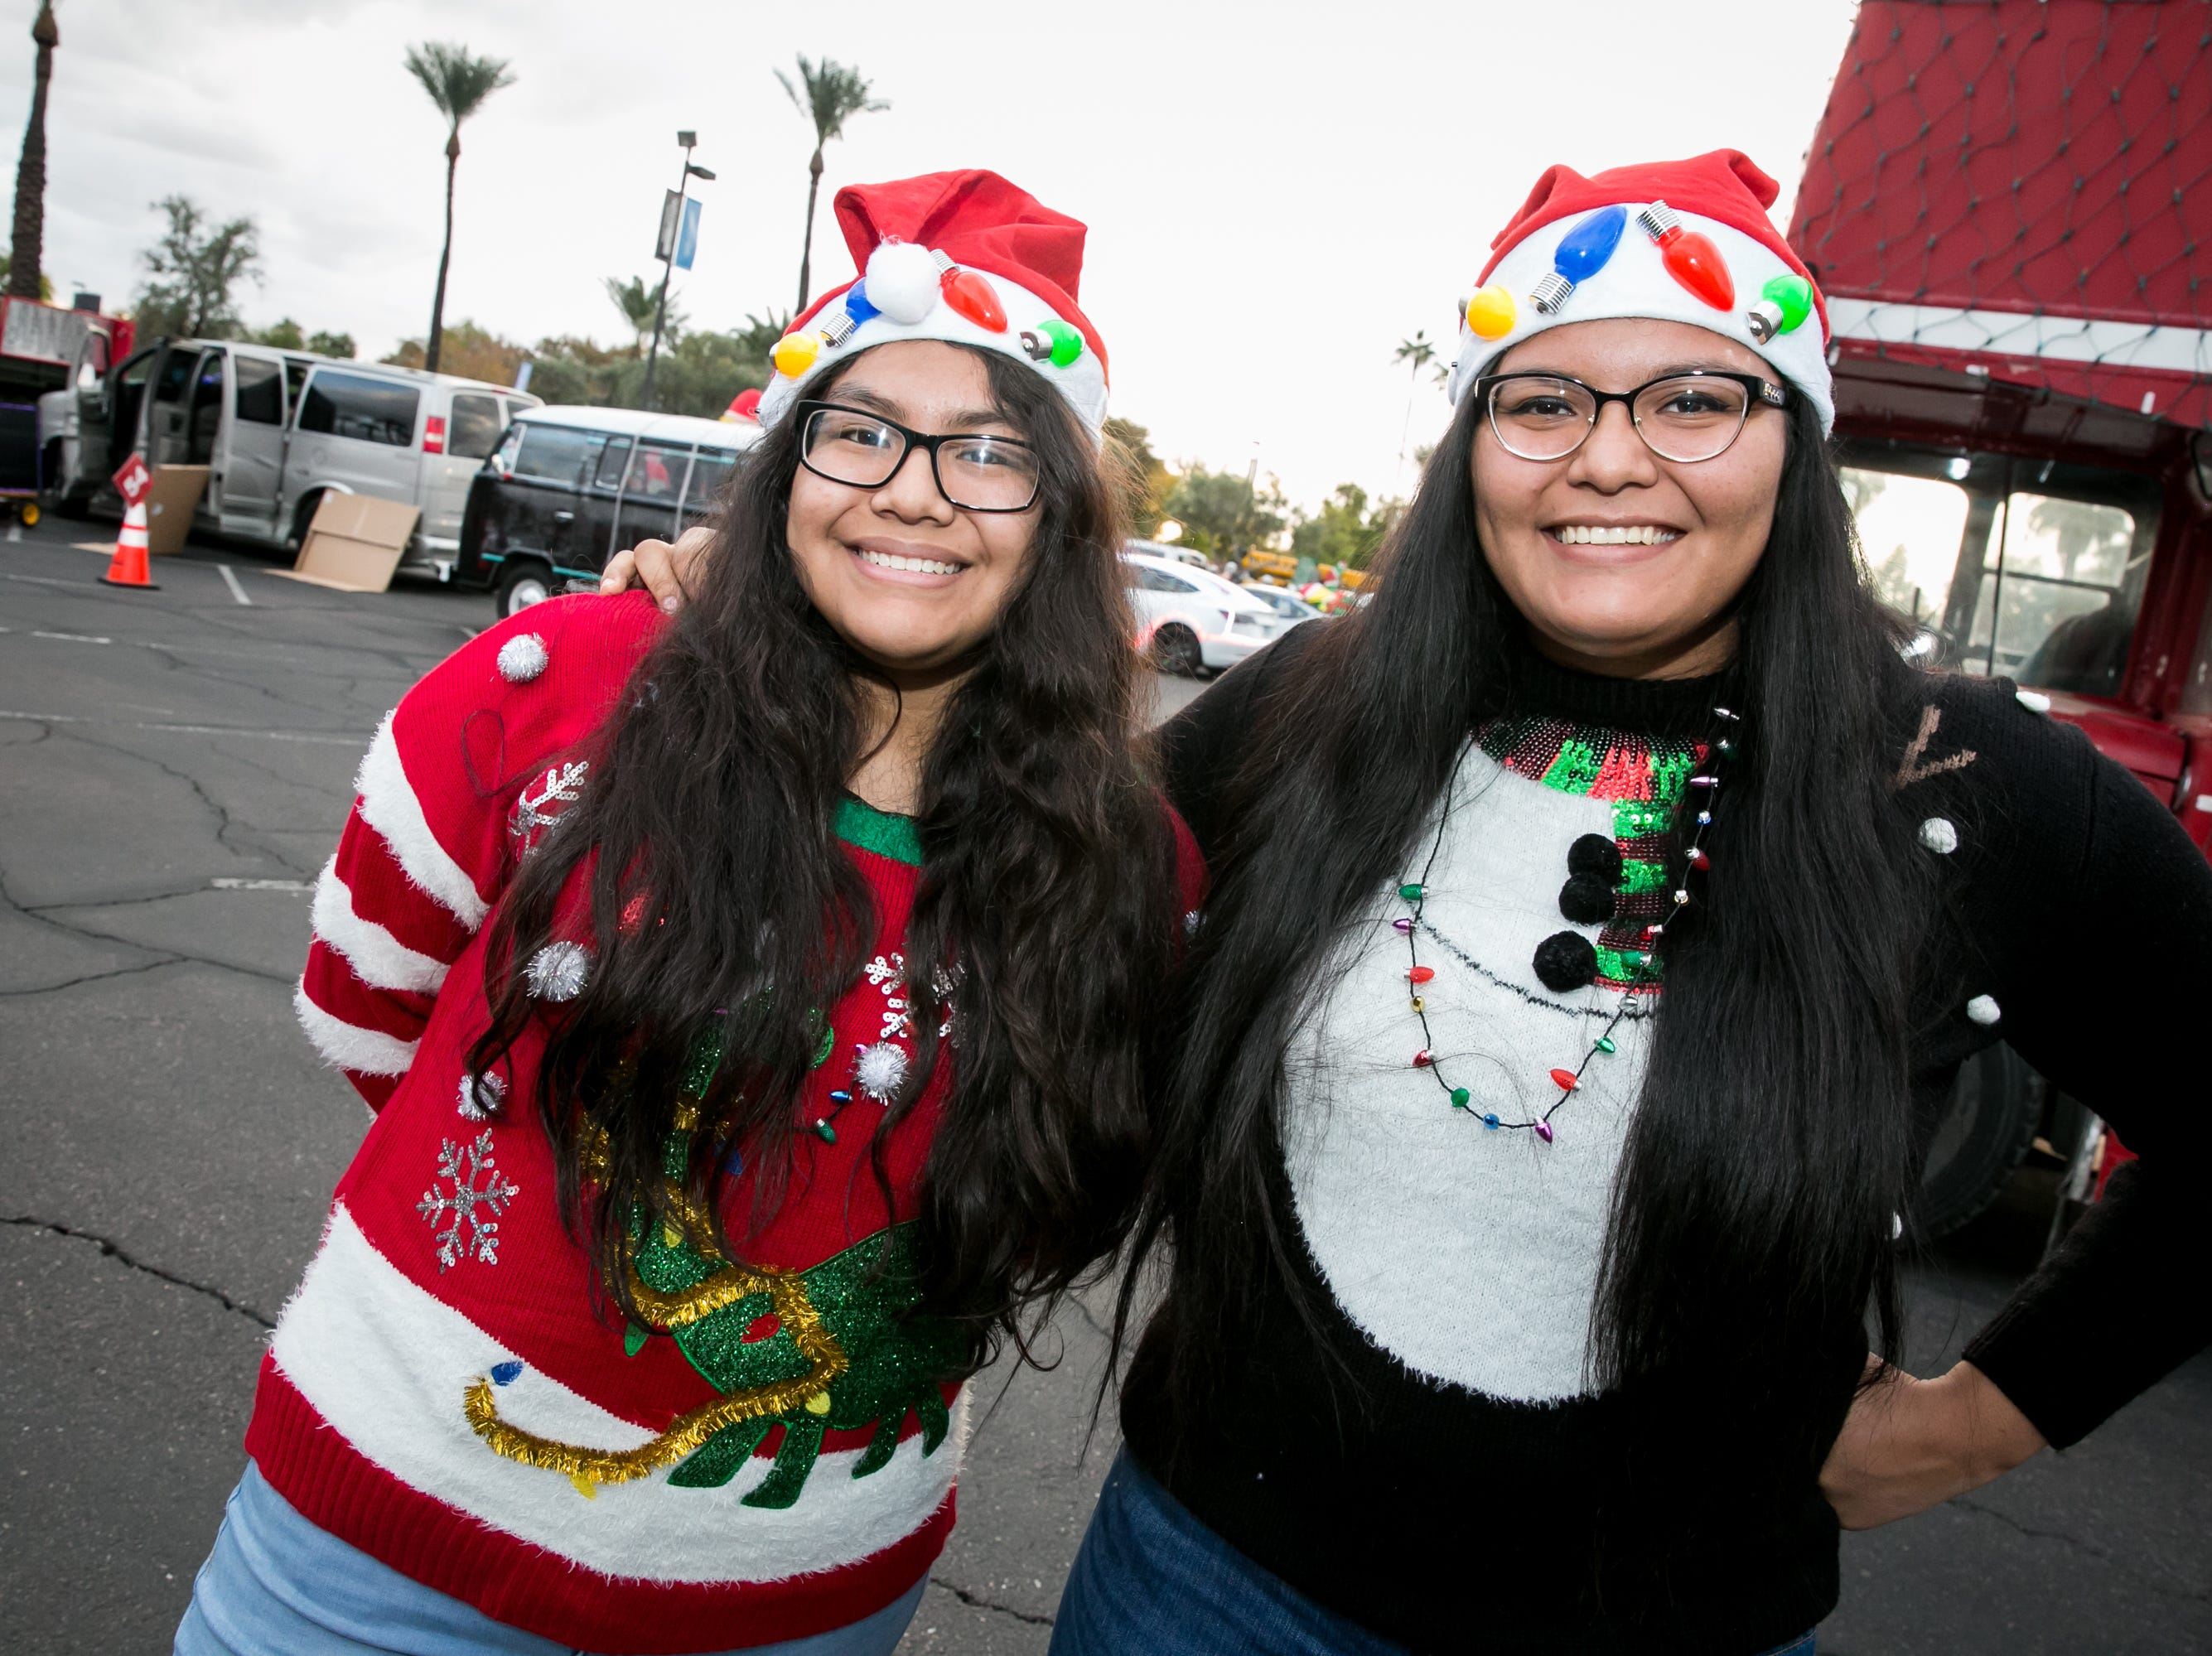 These ladies looked festive during the APS Electric Light Parade in Central Phoenix on Saturday, December 1, 2018.